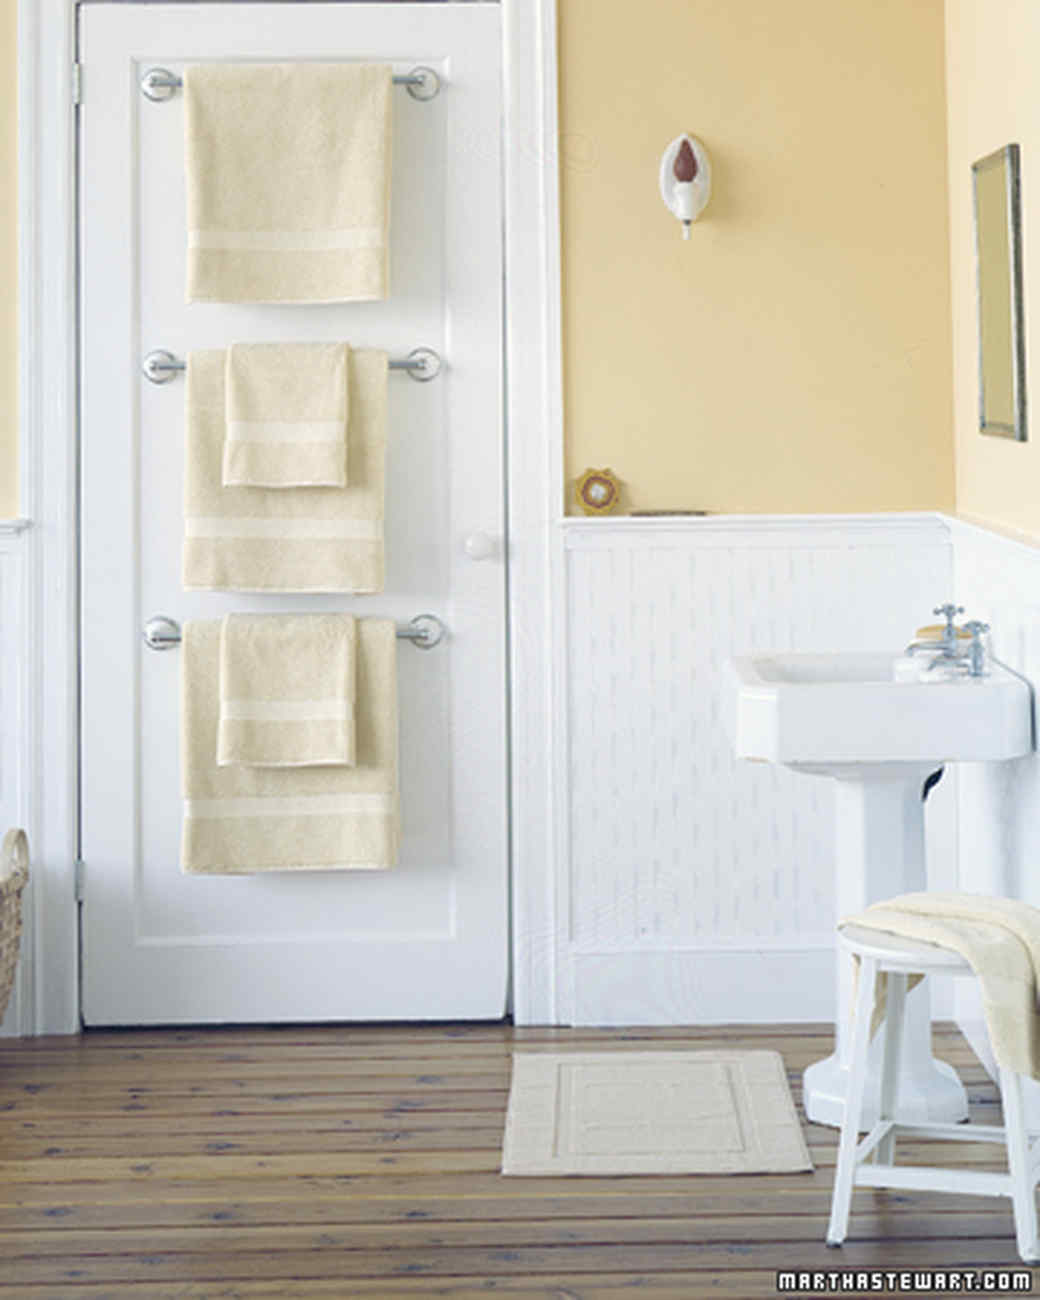 Multiple towel rack diy bathroom storage ideas for small spaces - 25 Bathroom Organizers Martha Stewart